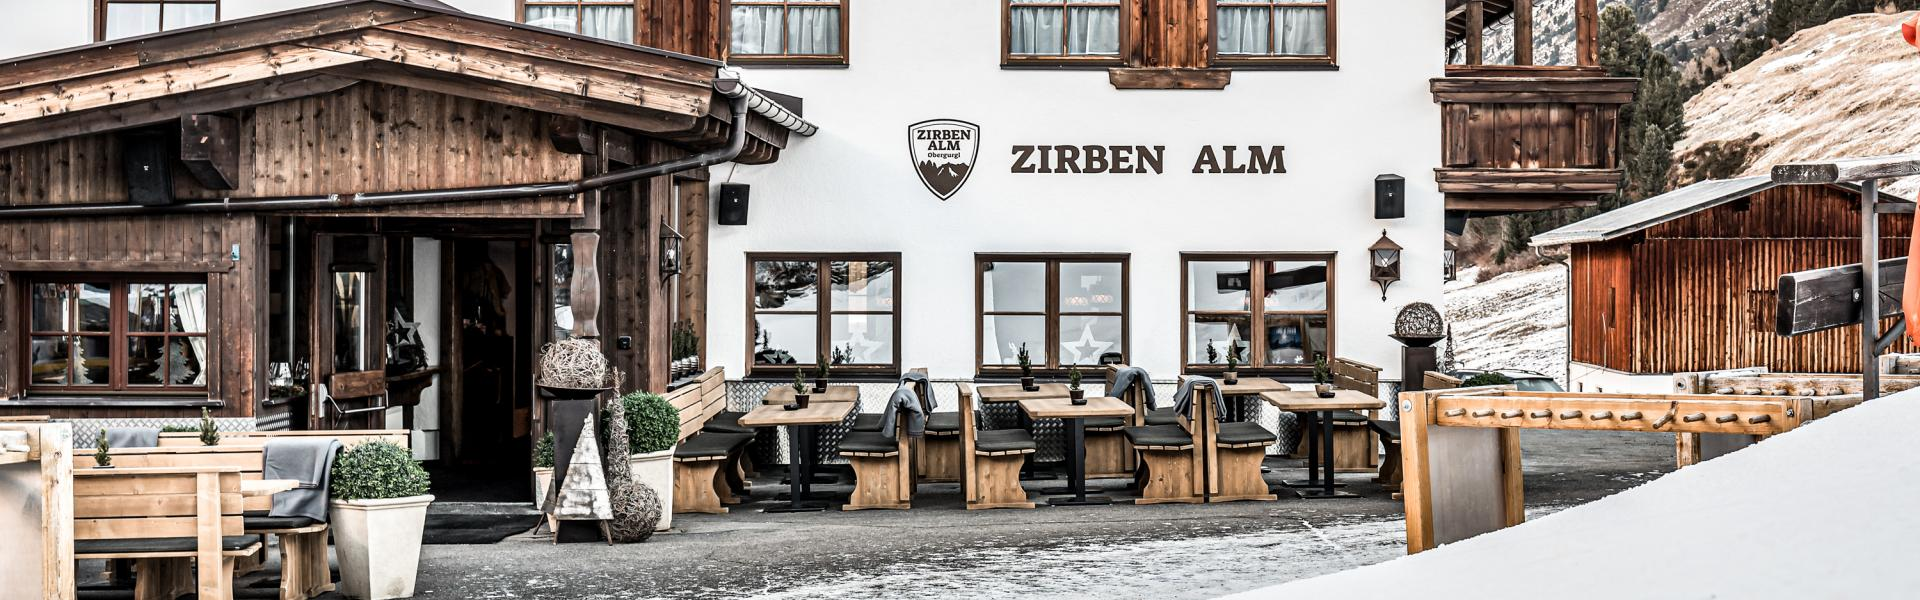 zirbenalm mountain restaurant with sun terrace | © Alexander Maria Lohmann